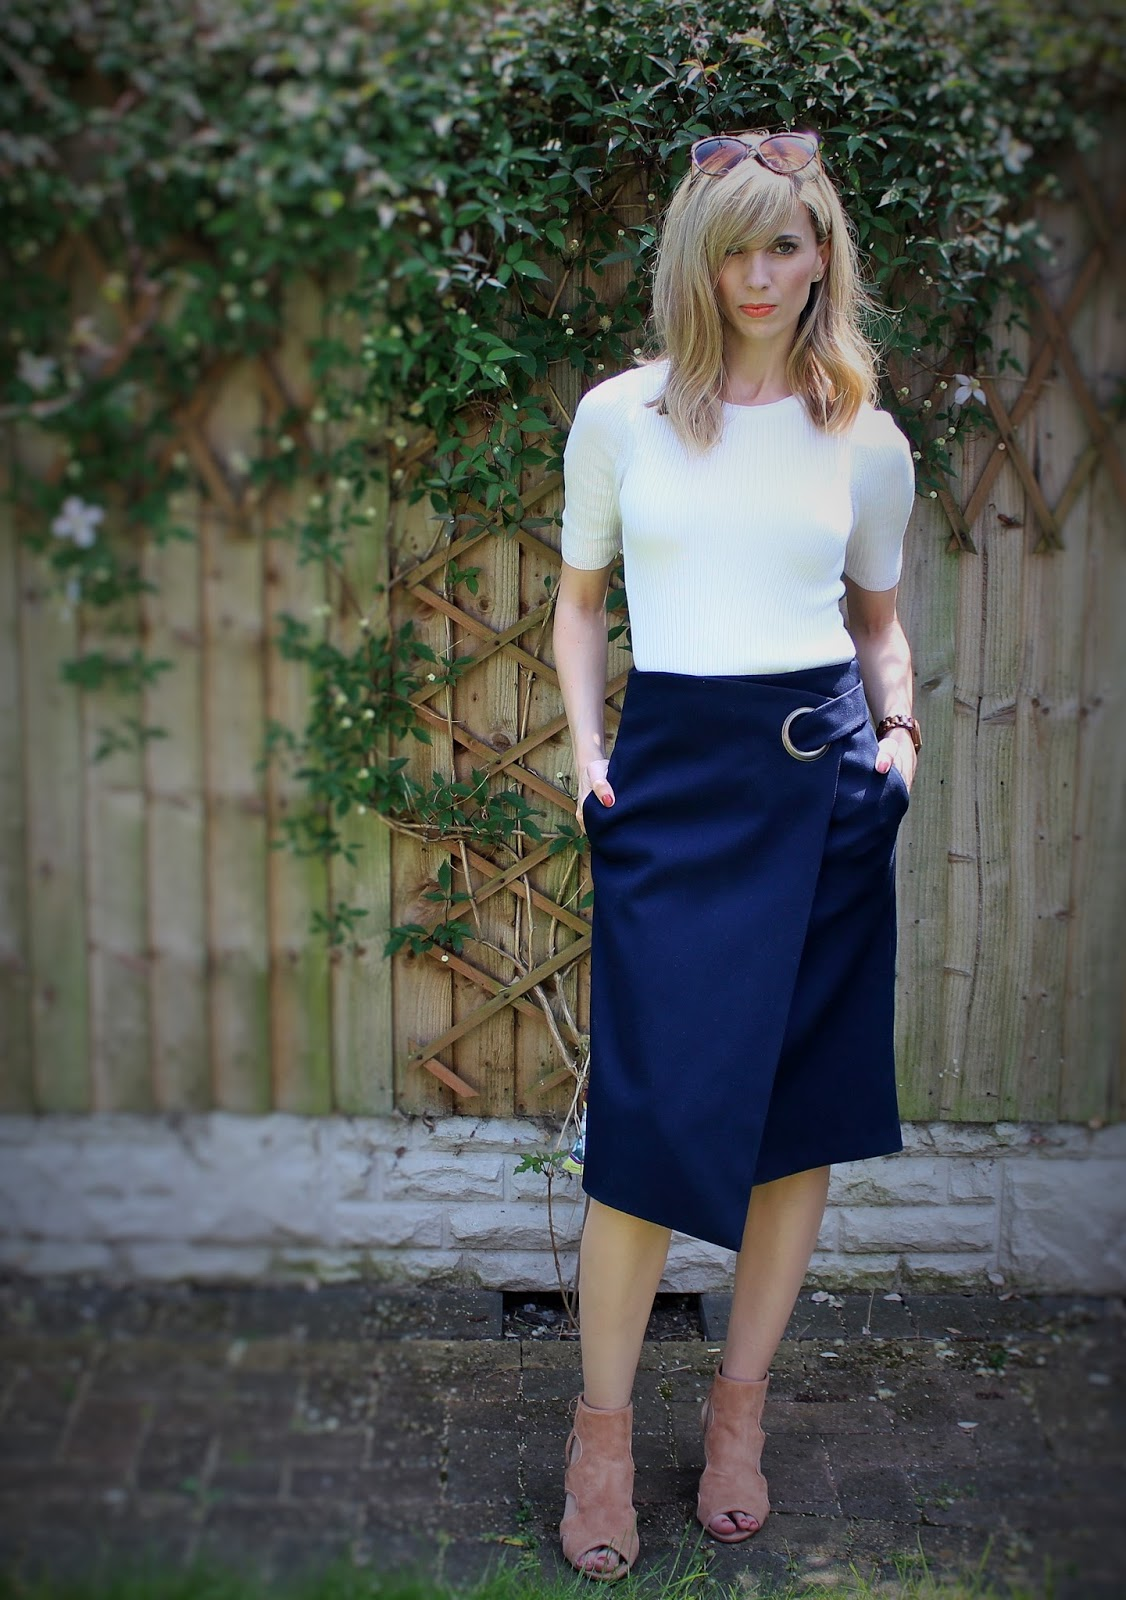 The Wrap Midi 2 - OOTD featuring Topshop skirt and River Island shoes